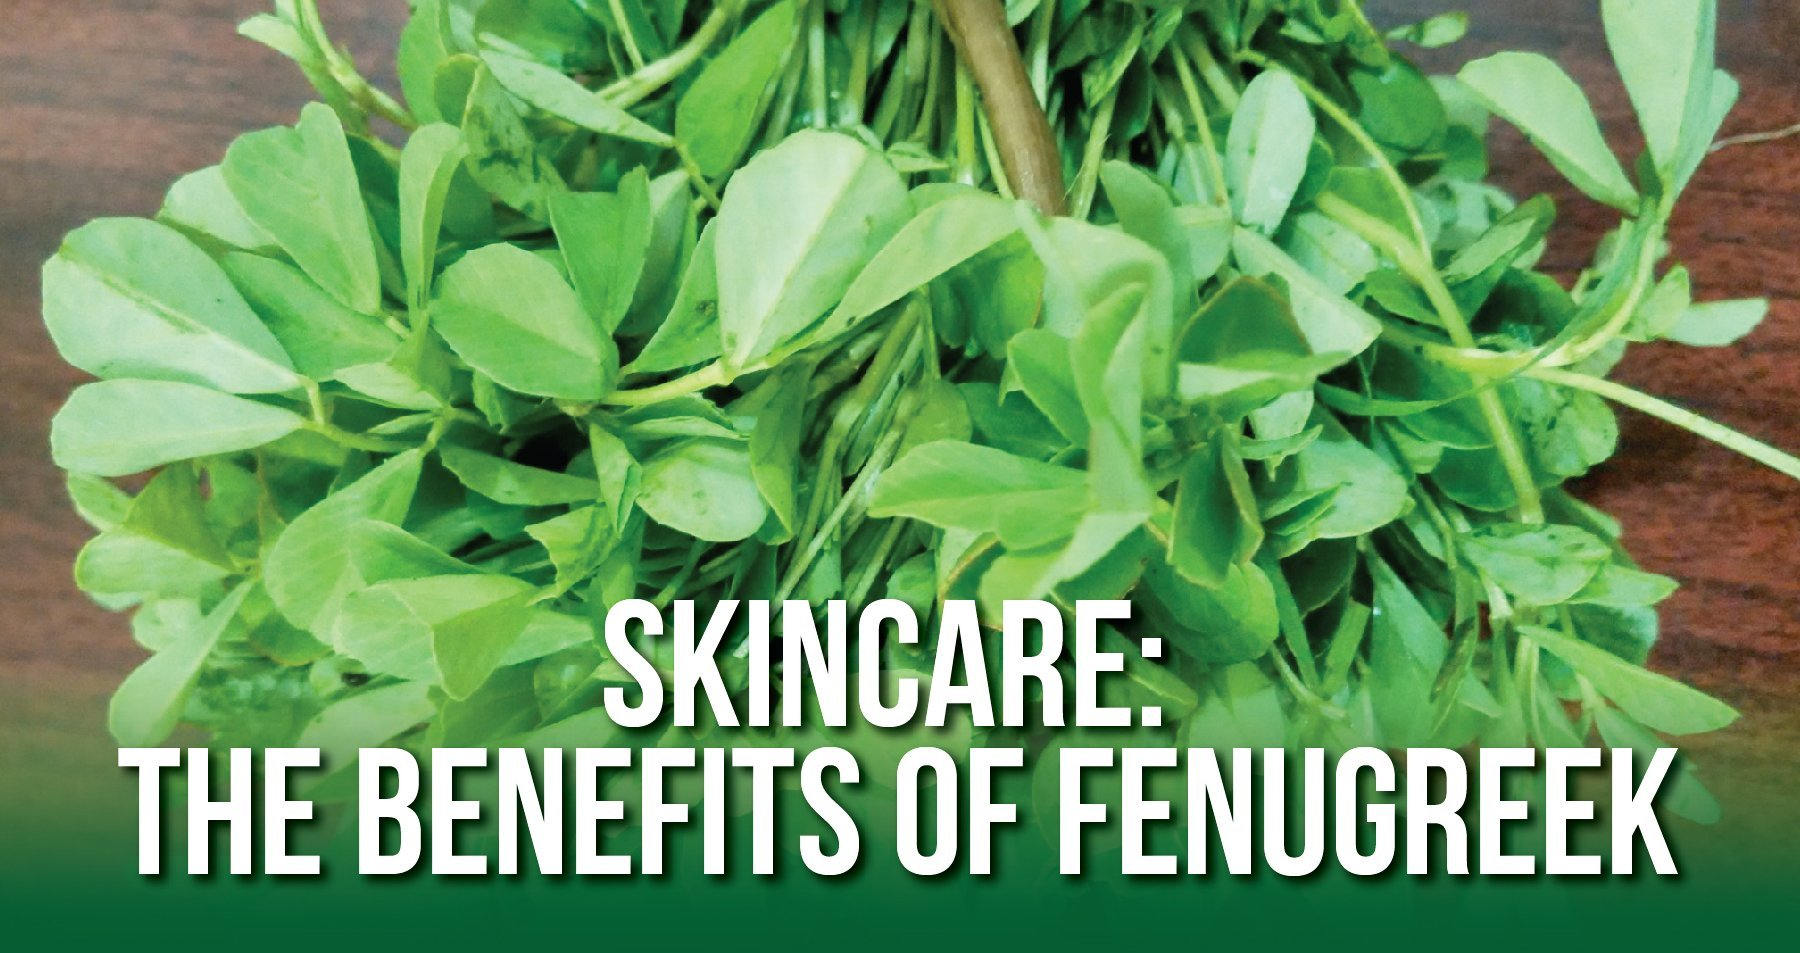 Fenugreek Skin Benefits: Get Your Fenugreek On | iHeart Nature